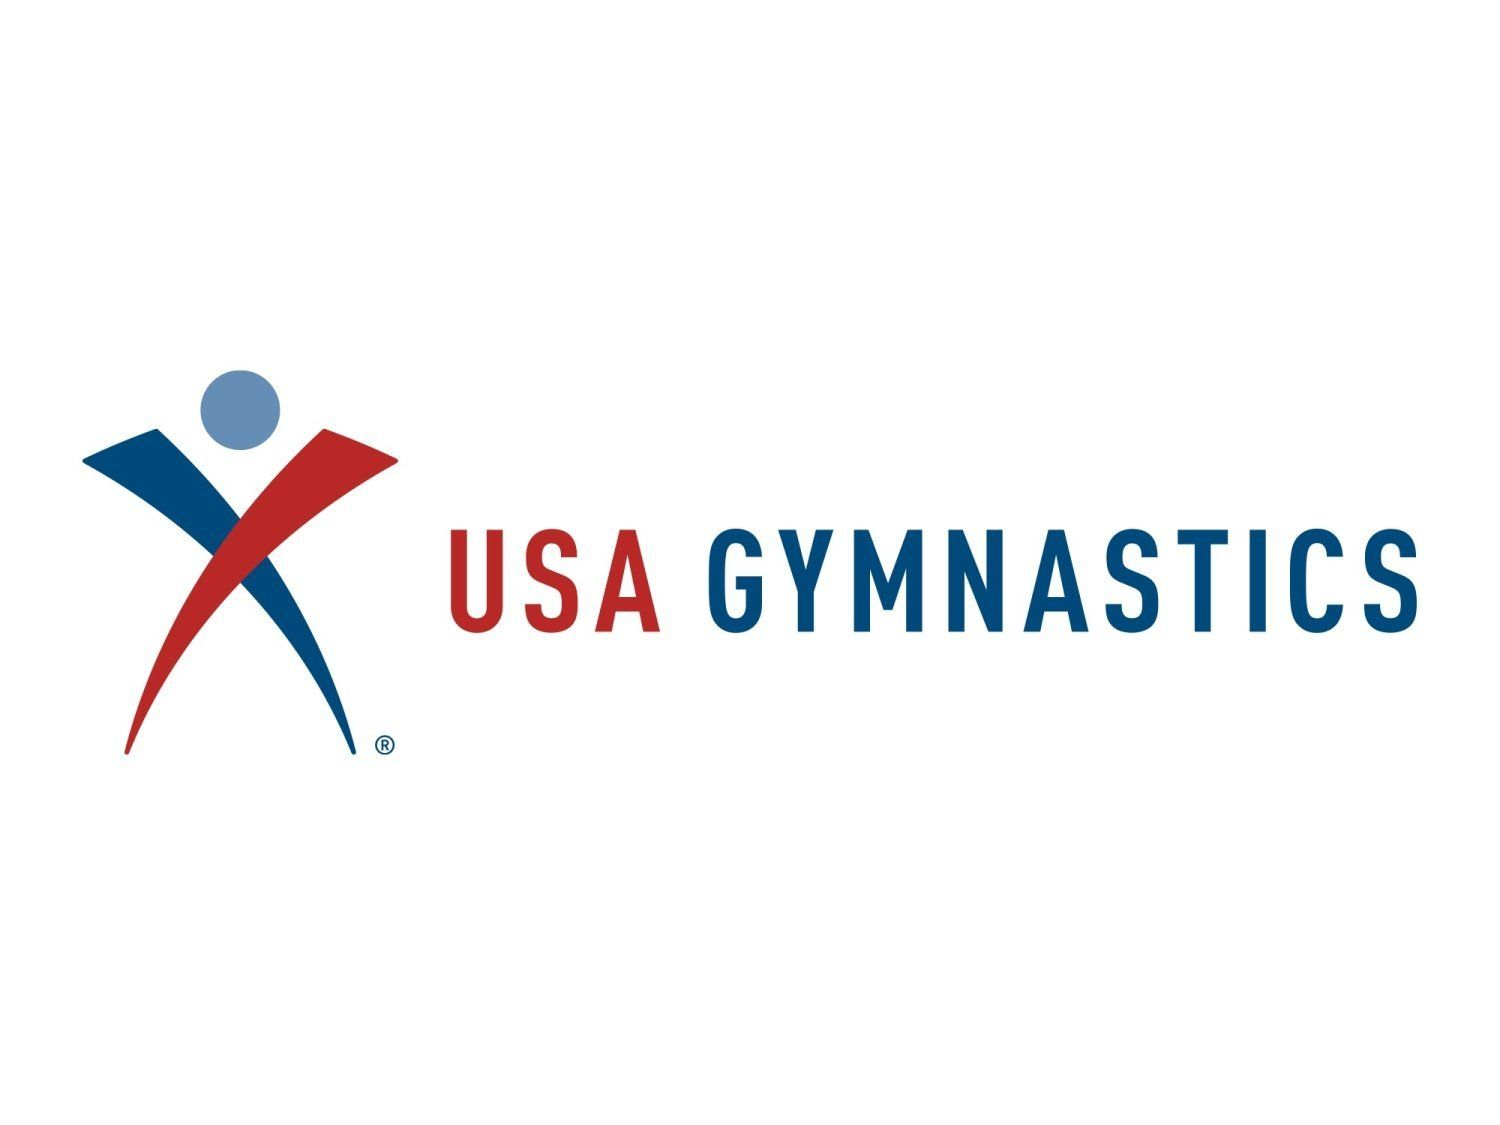 USA GYMNASTICS logo, graphic element on white